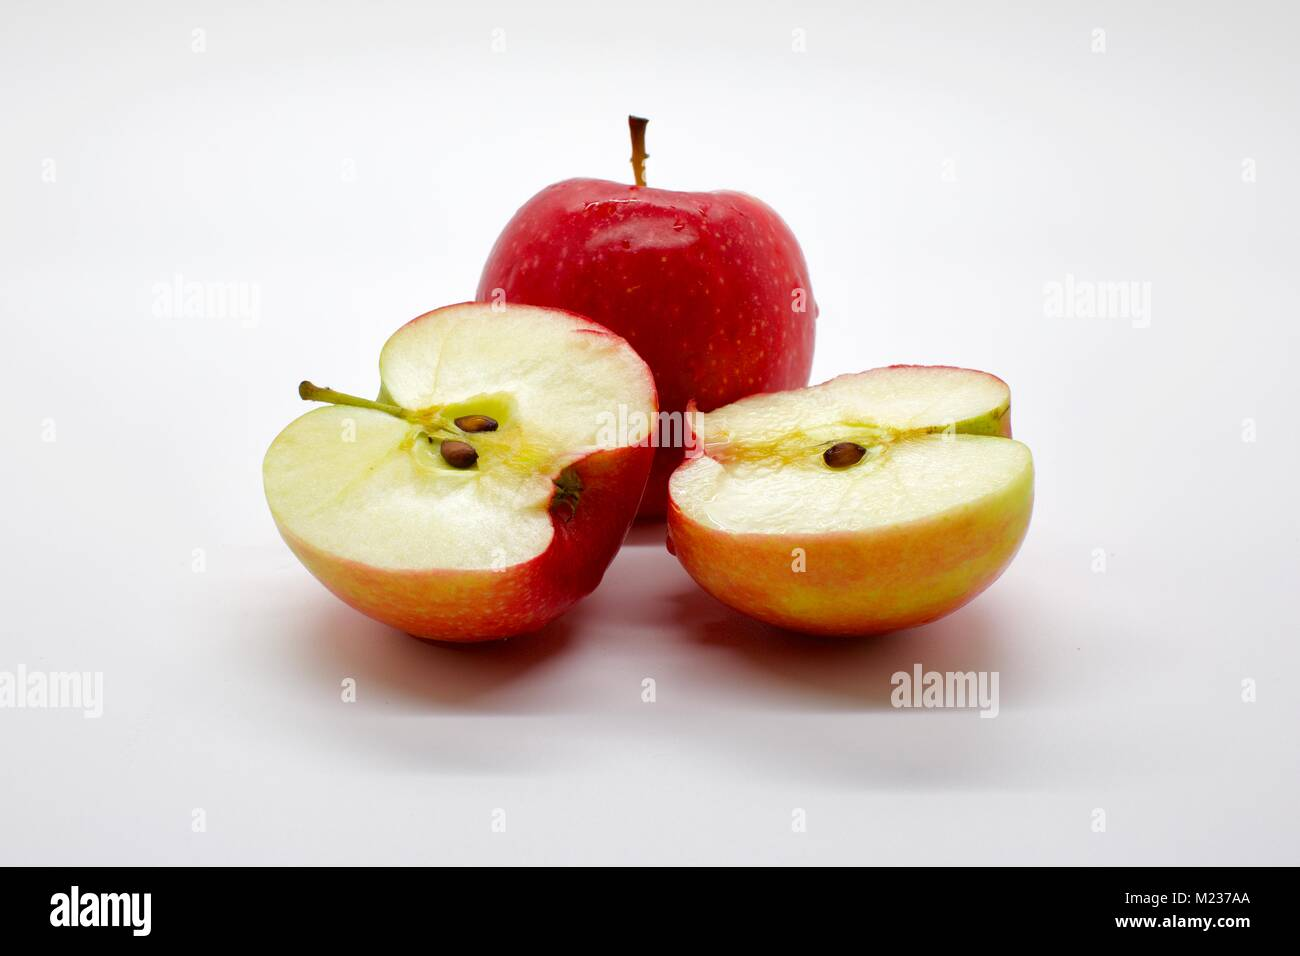 Two Jazz apple with one sliced in half on a white background - Stock Image